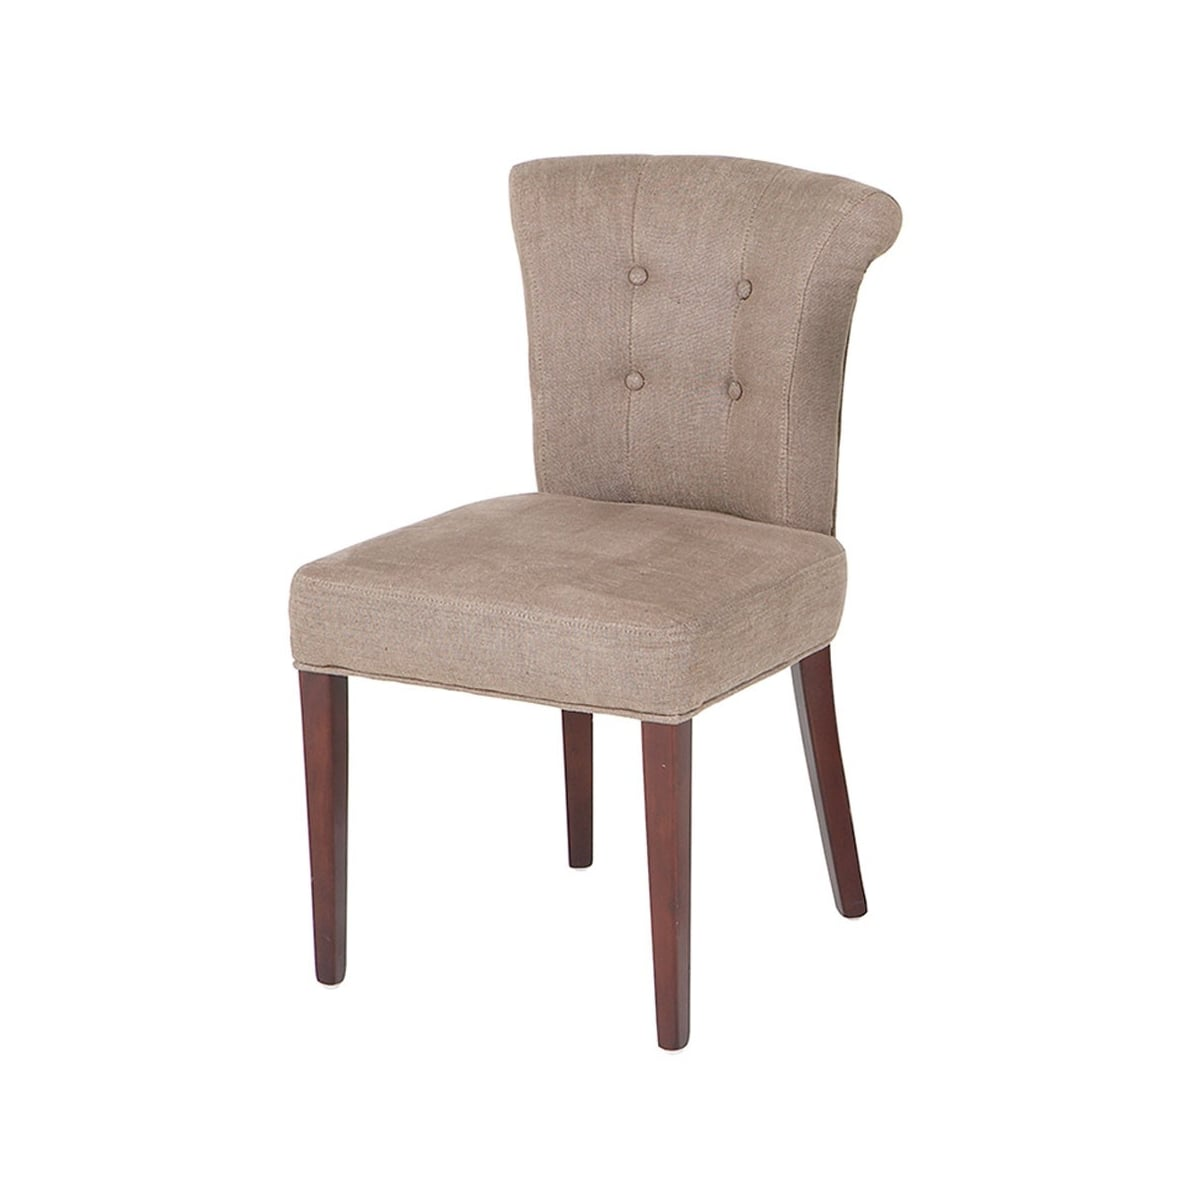 ring back dining chair 2 x 4 adirondack plans eichholtz linen swanky interiors